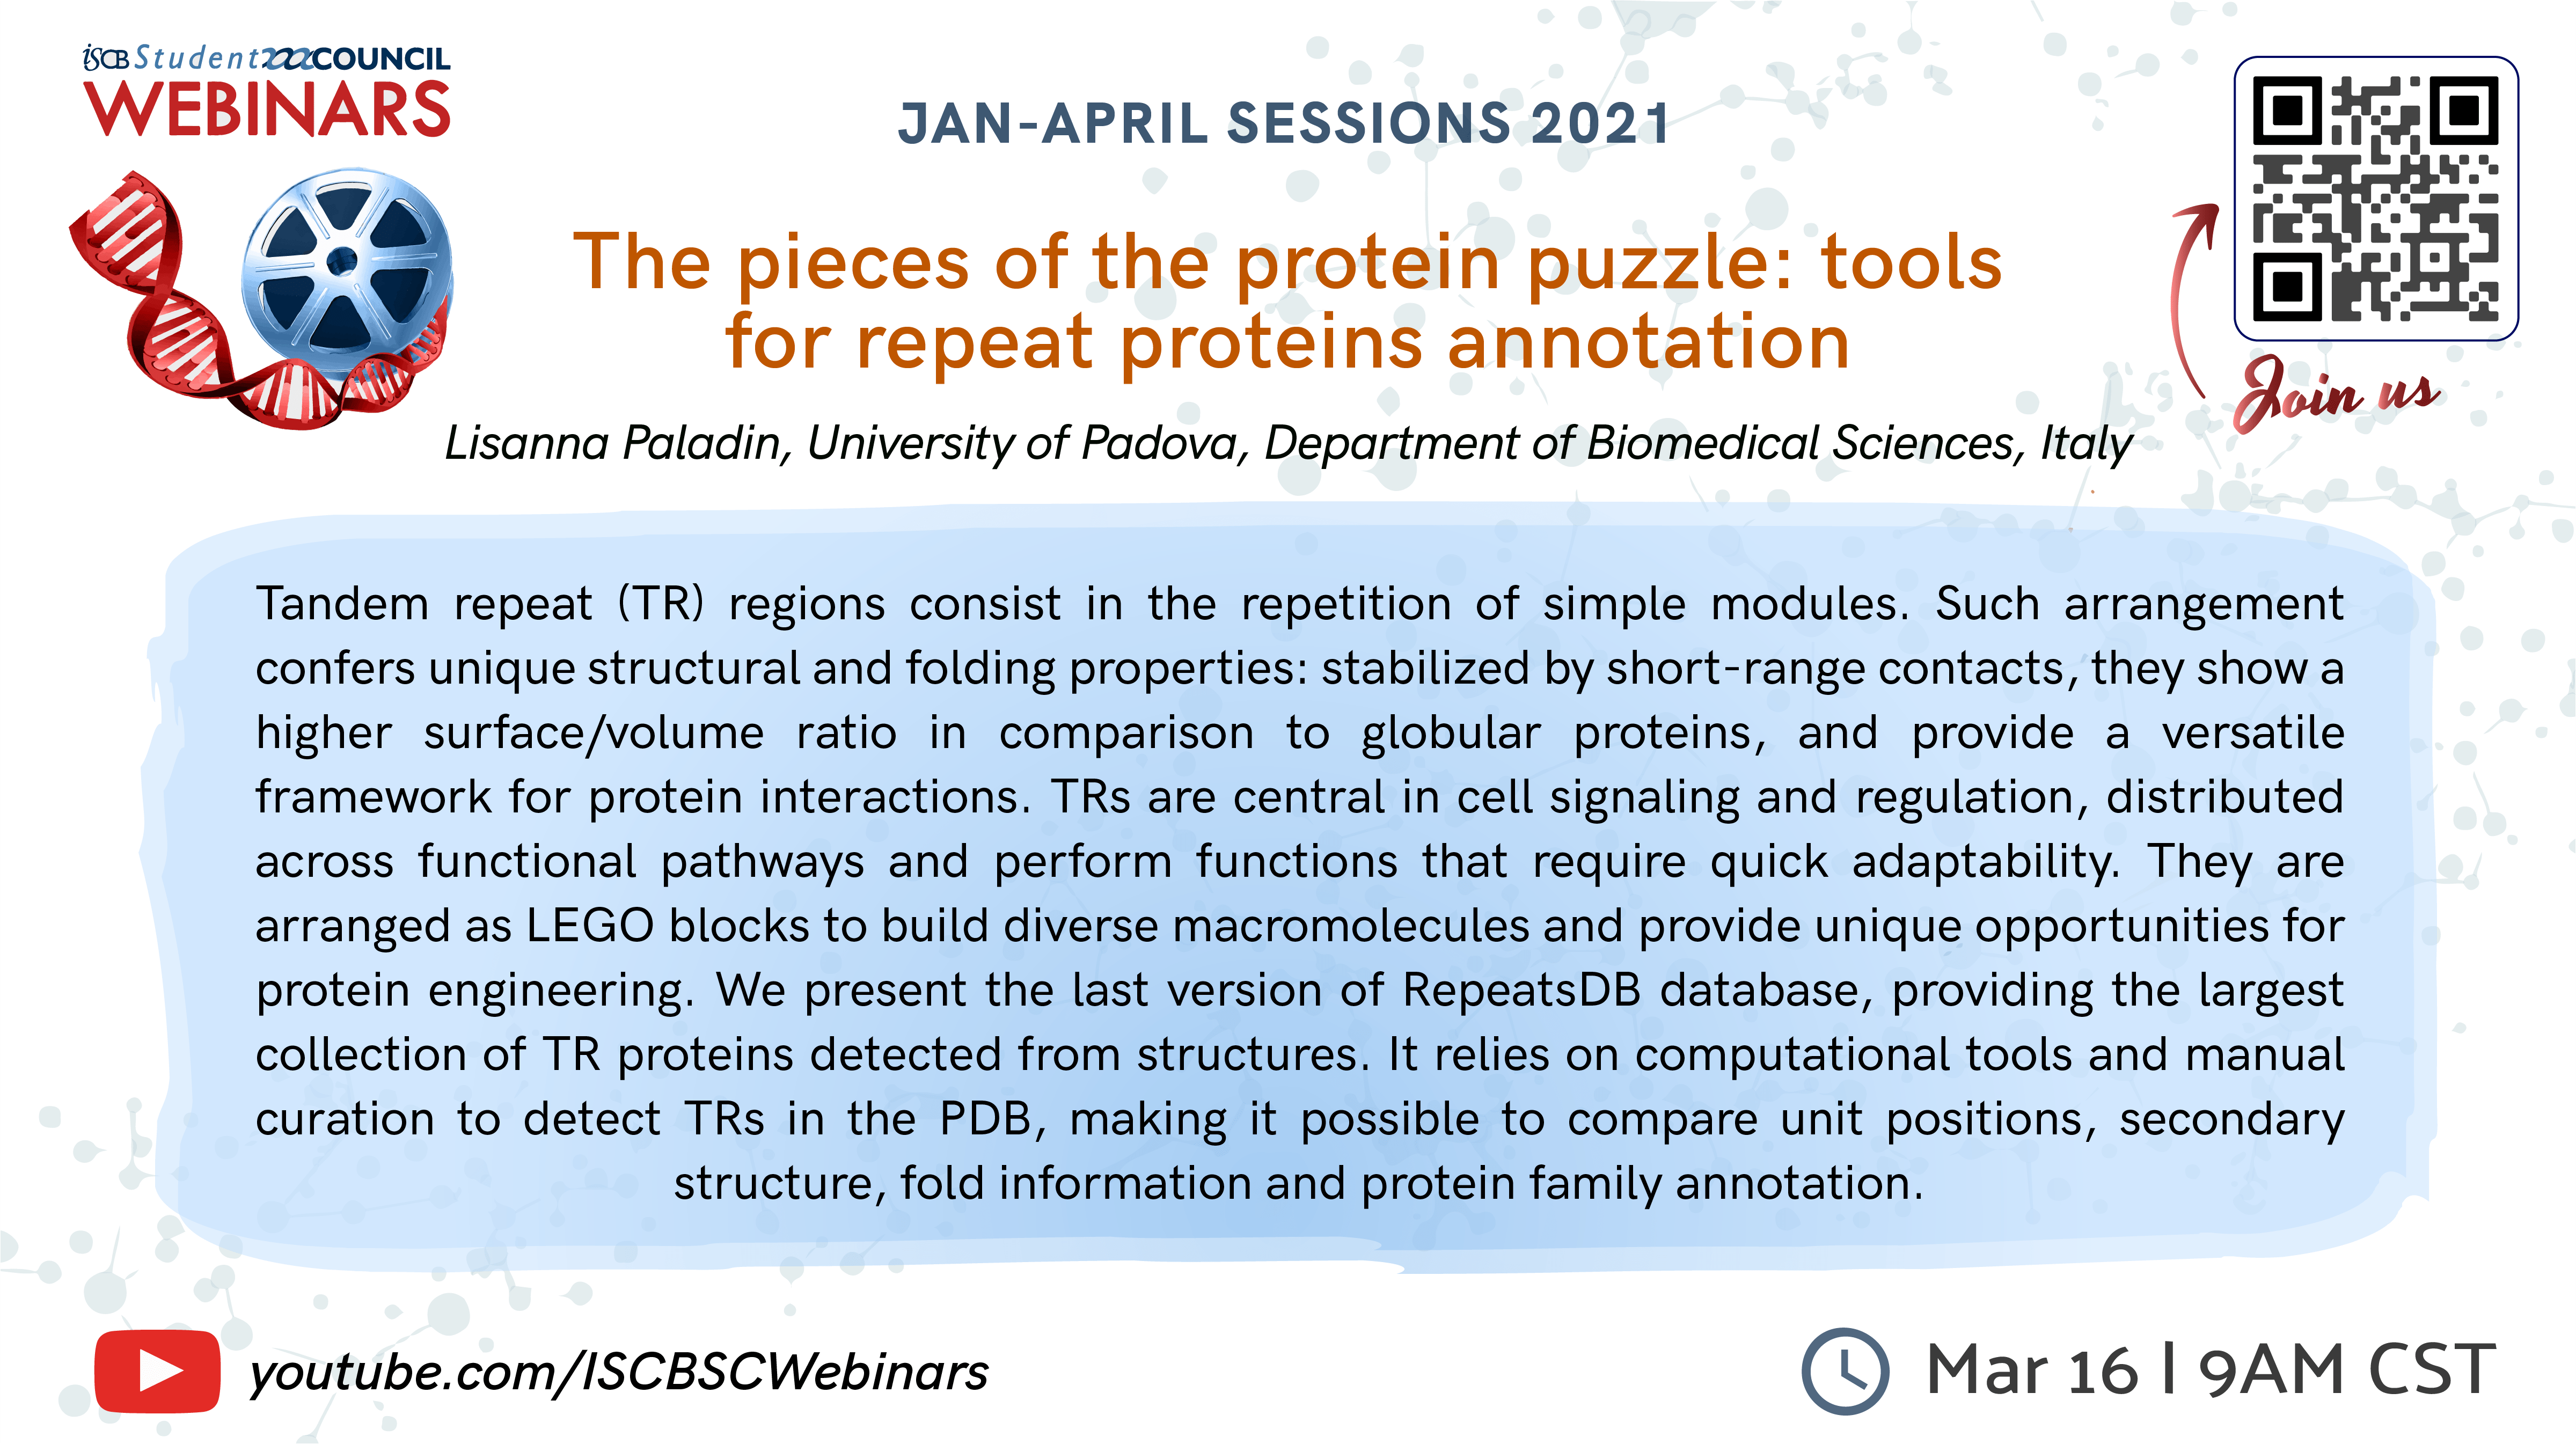 Lisanna Paladin: The pieces of the protein puzzle: tools for repeat proteins annotation